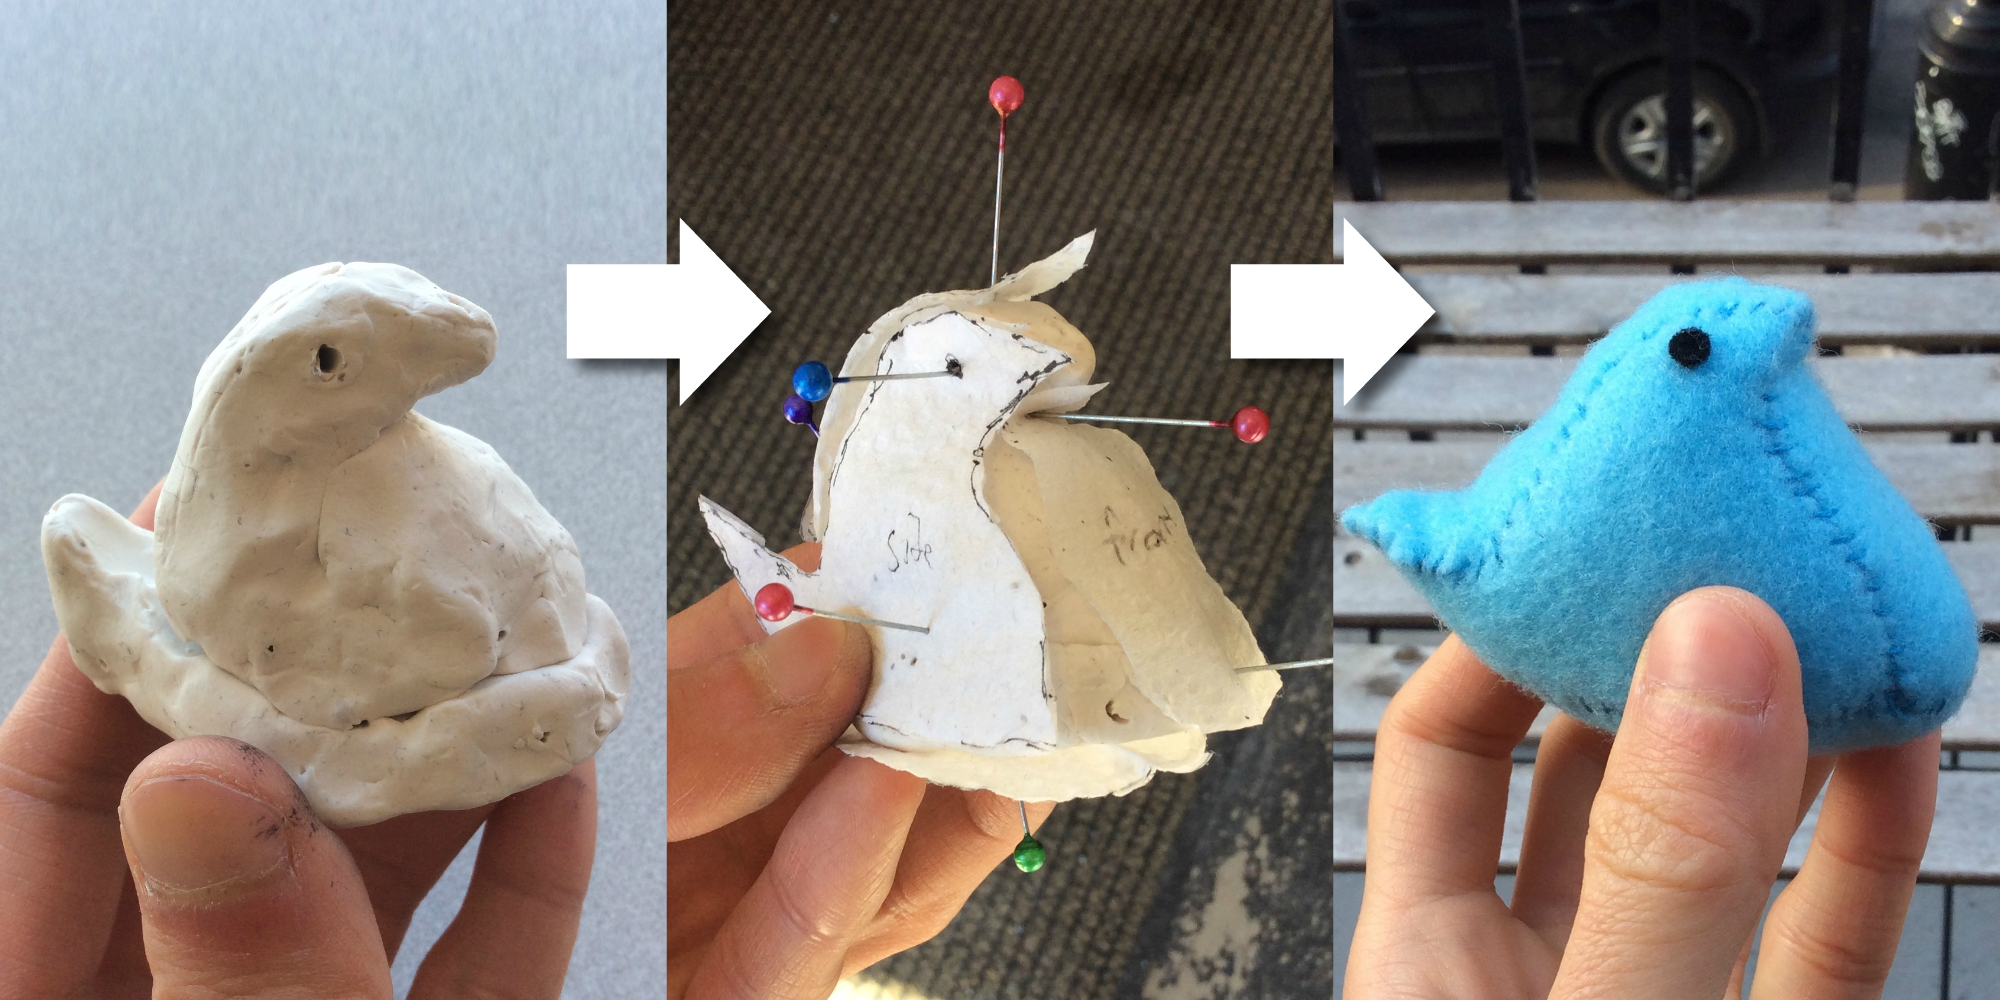 Make Plushie Patterns With Play Doh Paper Towels